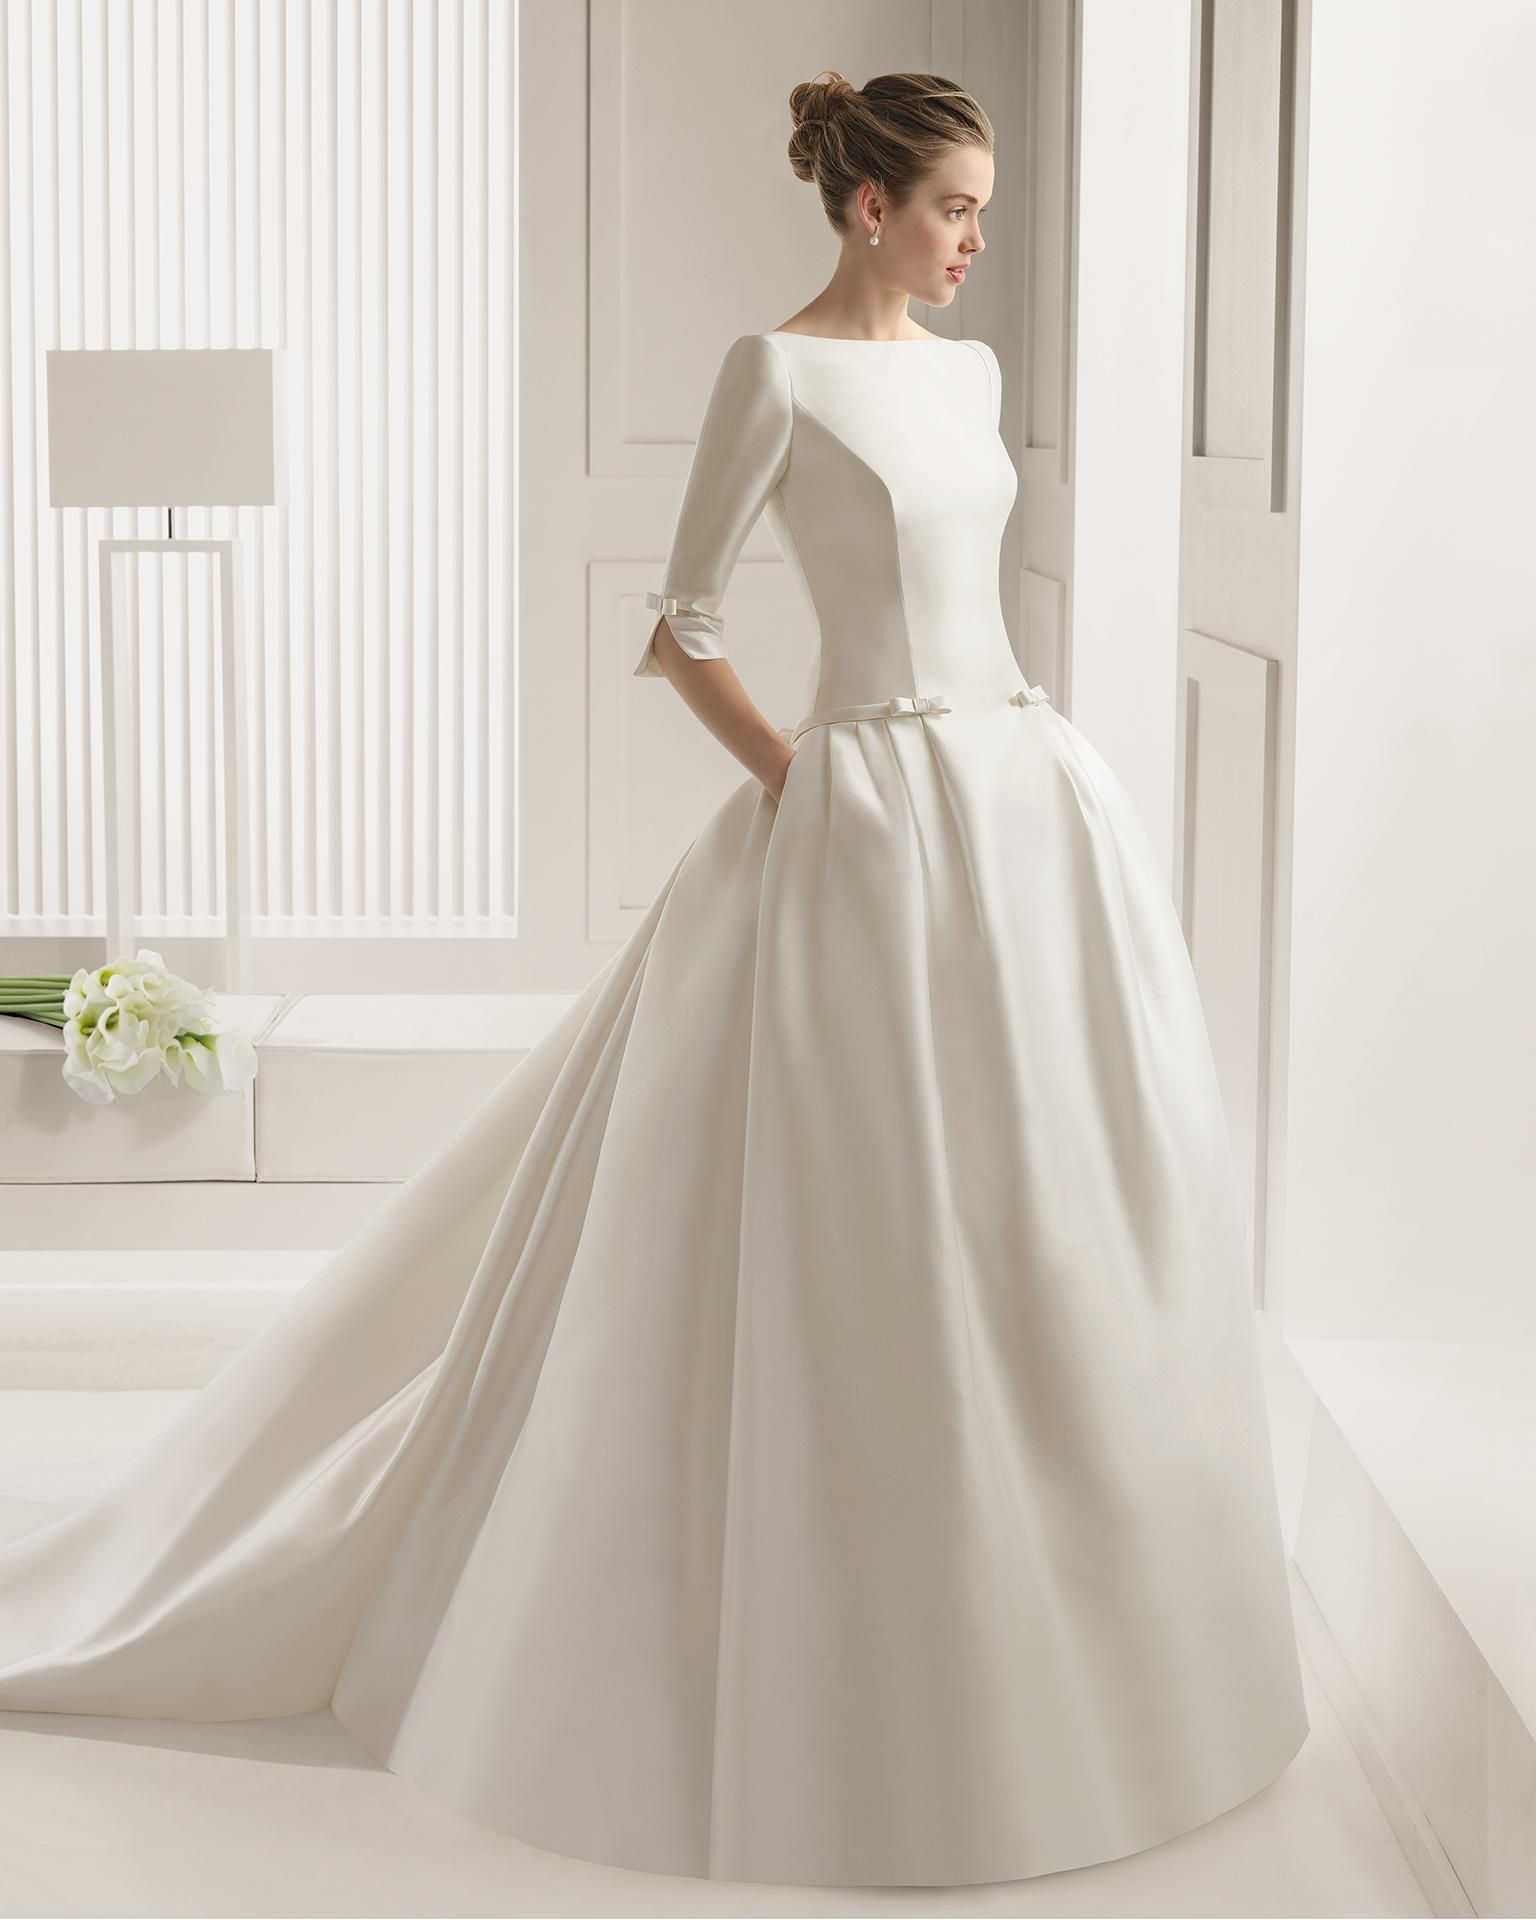 2015 Spring Chic White Backless Ball Gown Wedding Dresses Bateau - Wedding Dress Shirt